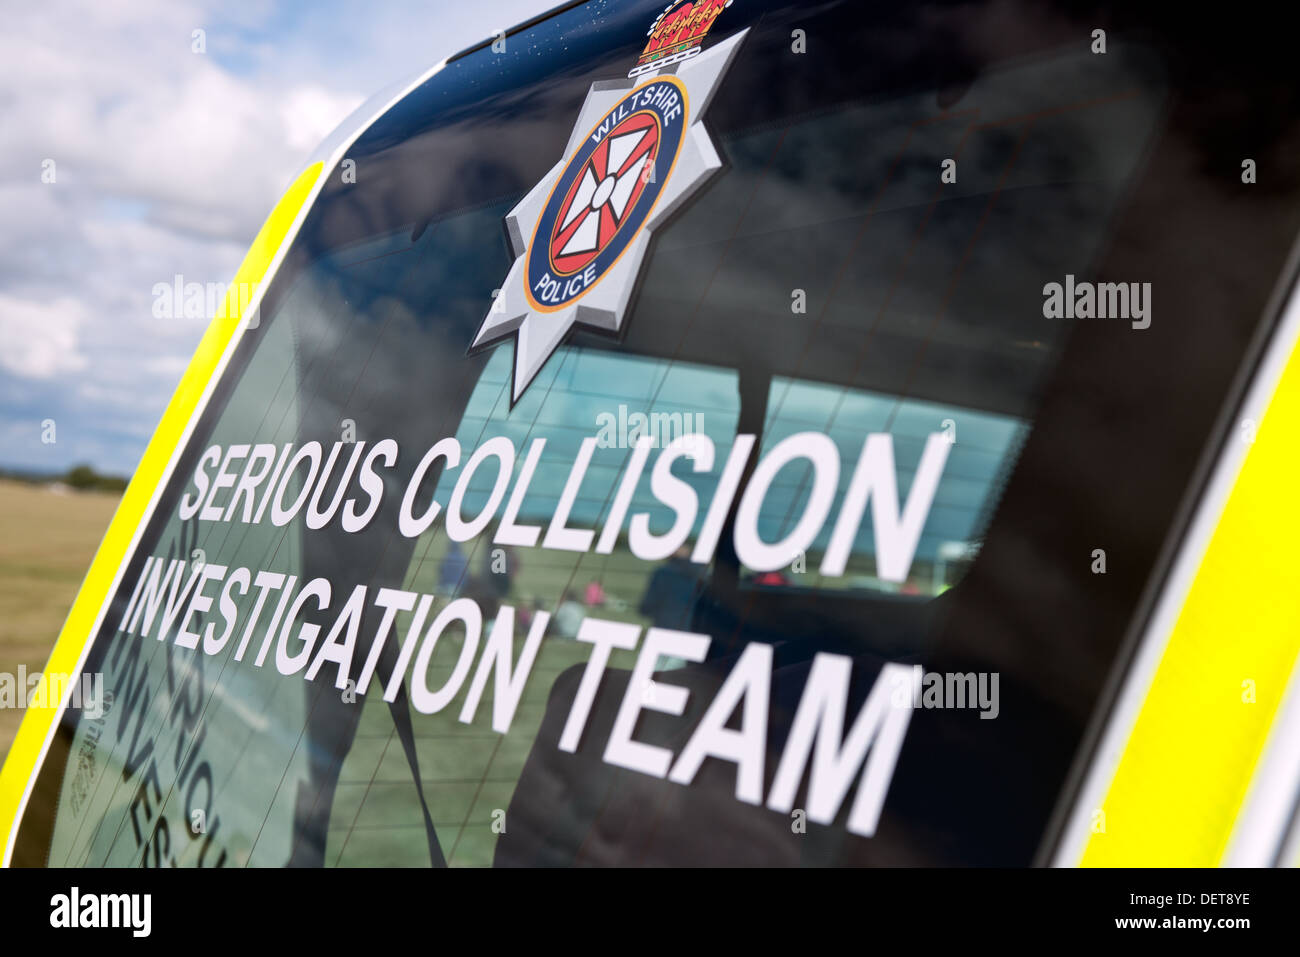 The text on a screen of Wiltshire police's serious collision investigation team's vehicle - Stock Image